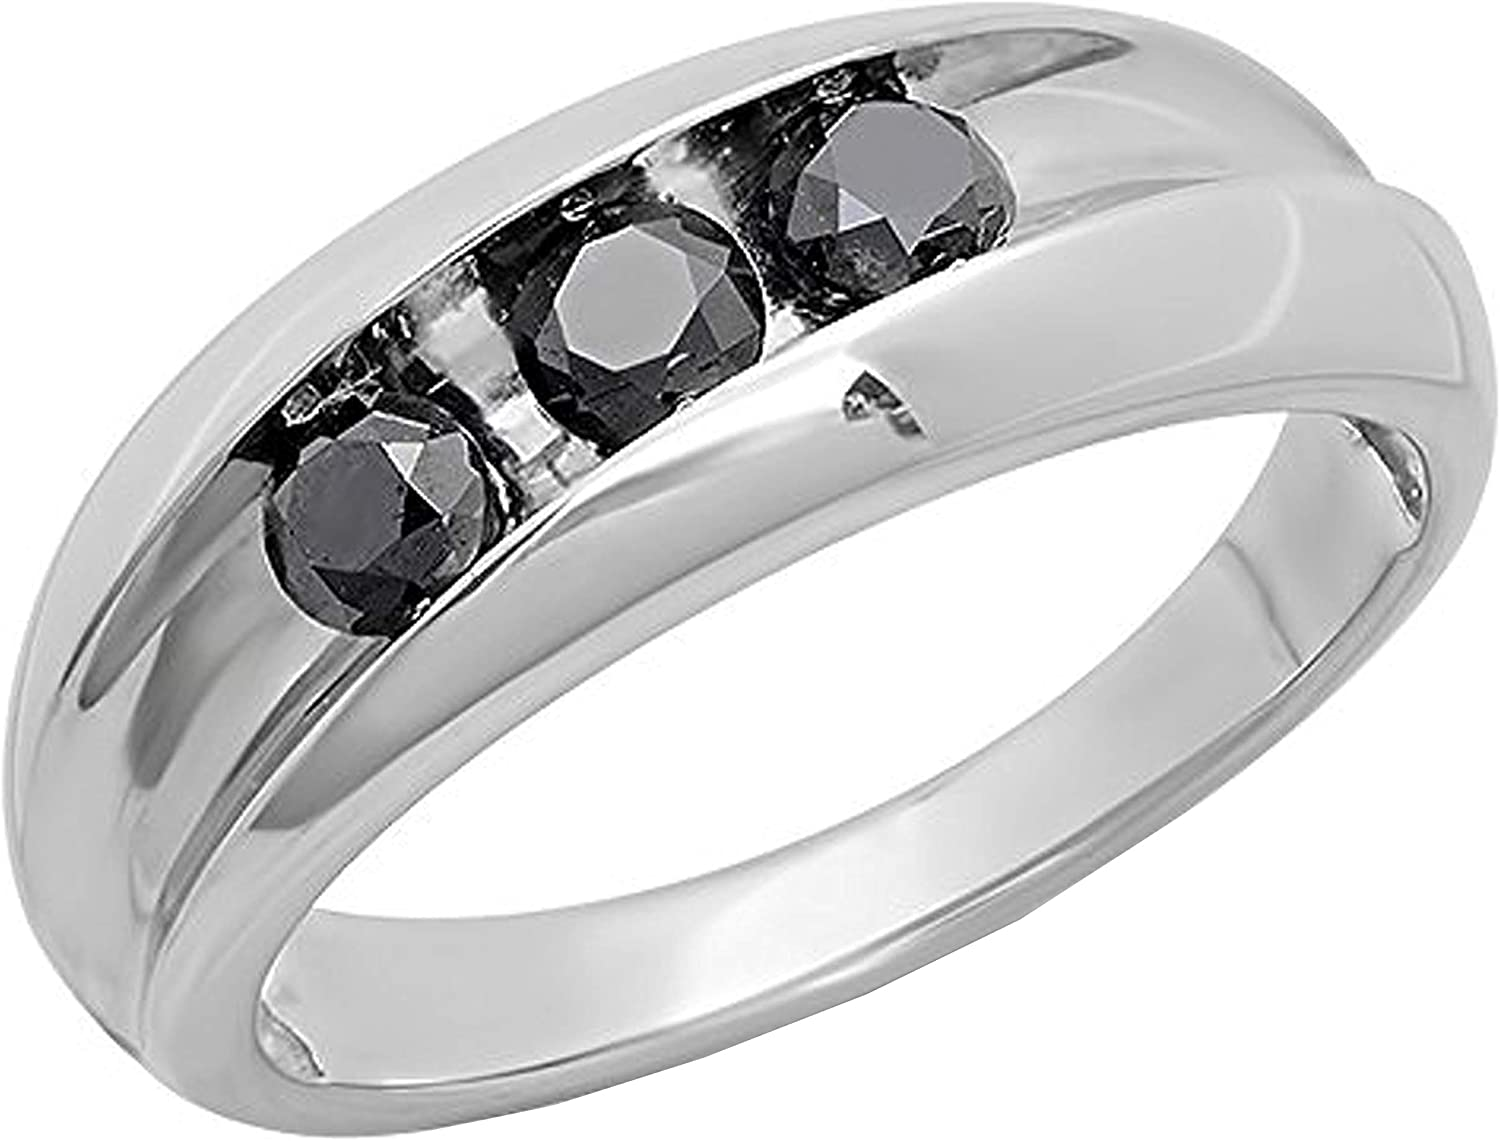 Dazzlingrock Collection 1.00 Carat (ctw) Round Black Diamonds Men's 3-Stone Wedding Band 1 CT, Sterling Silver